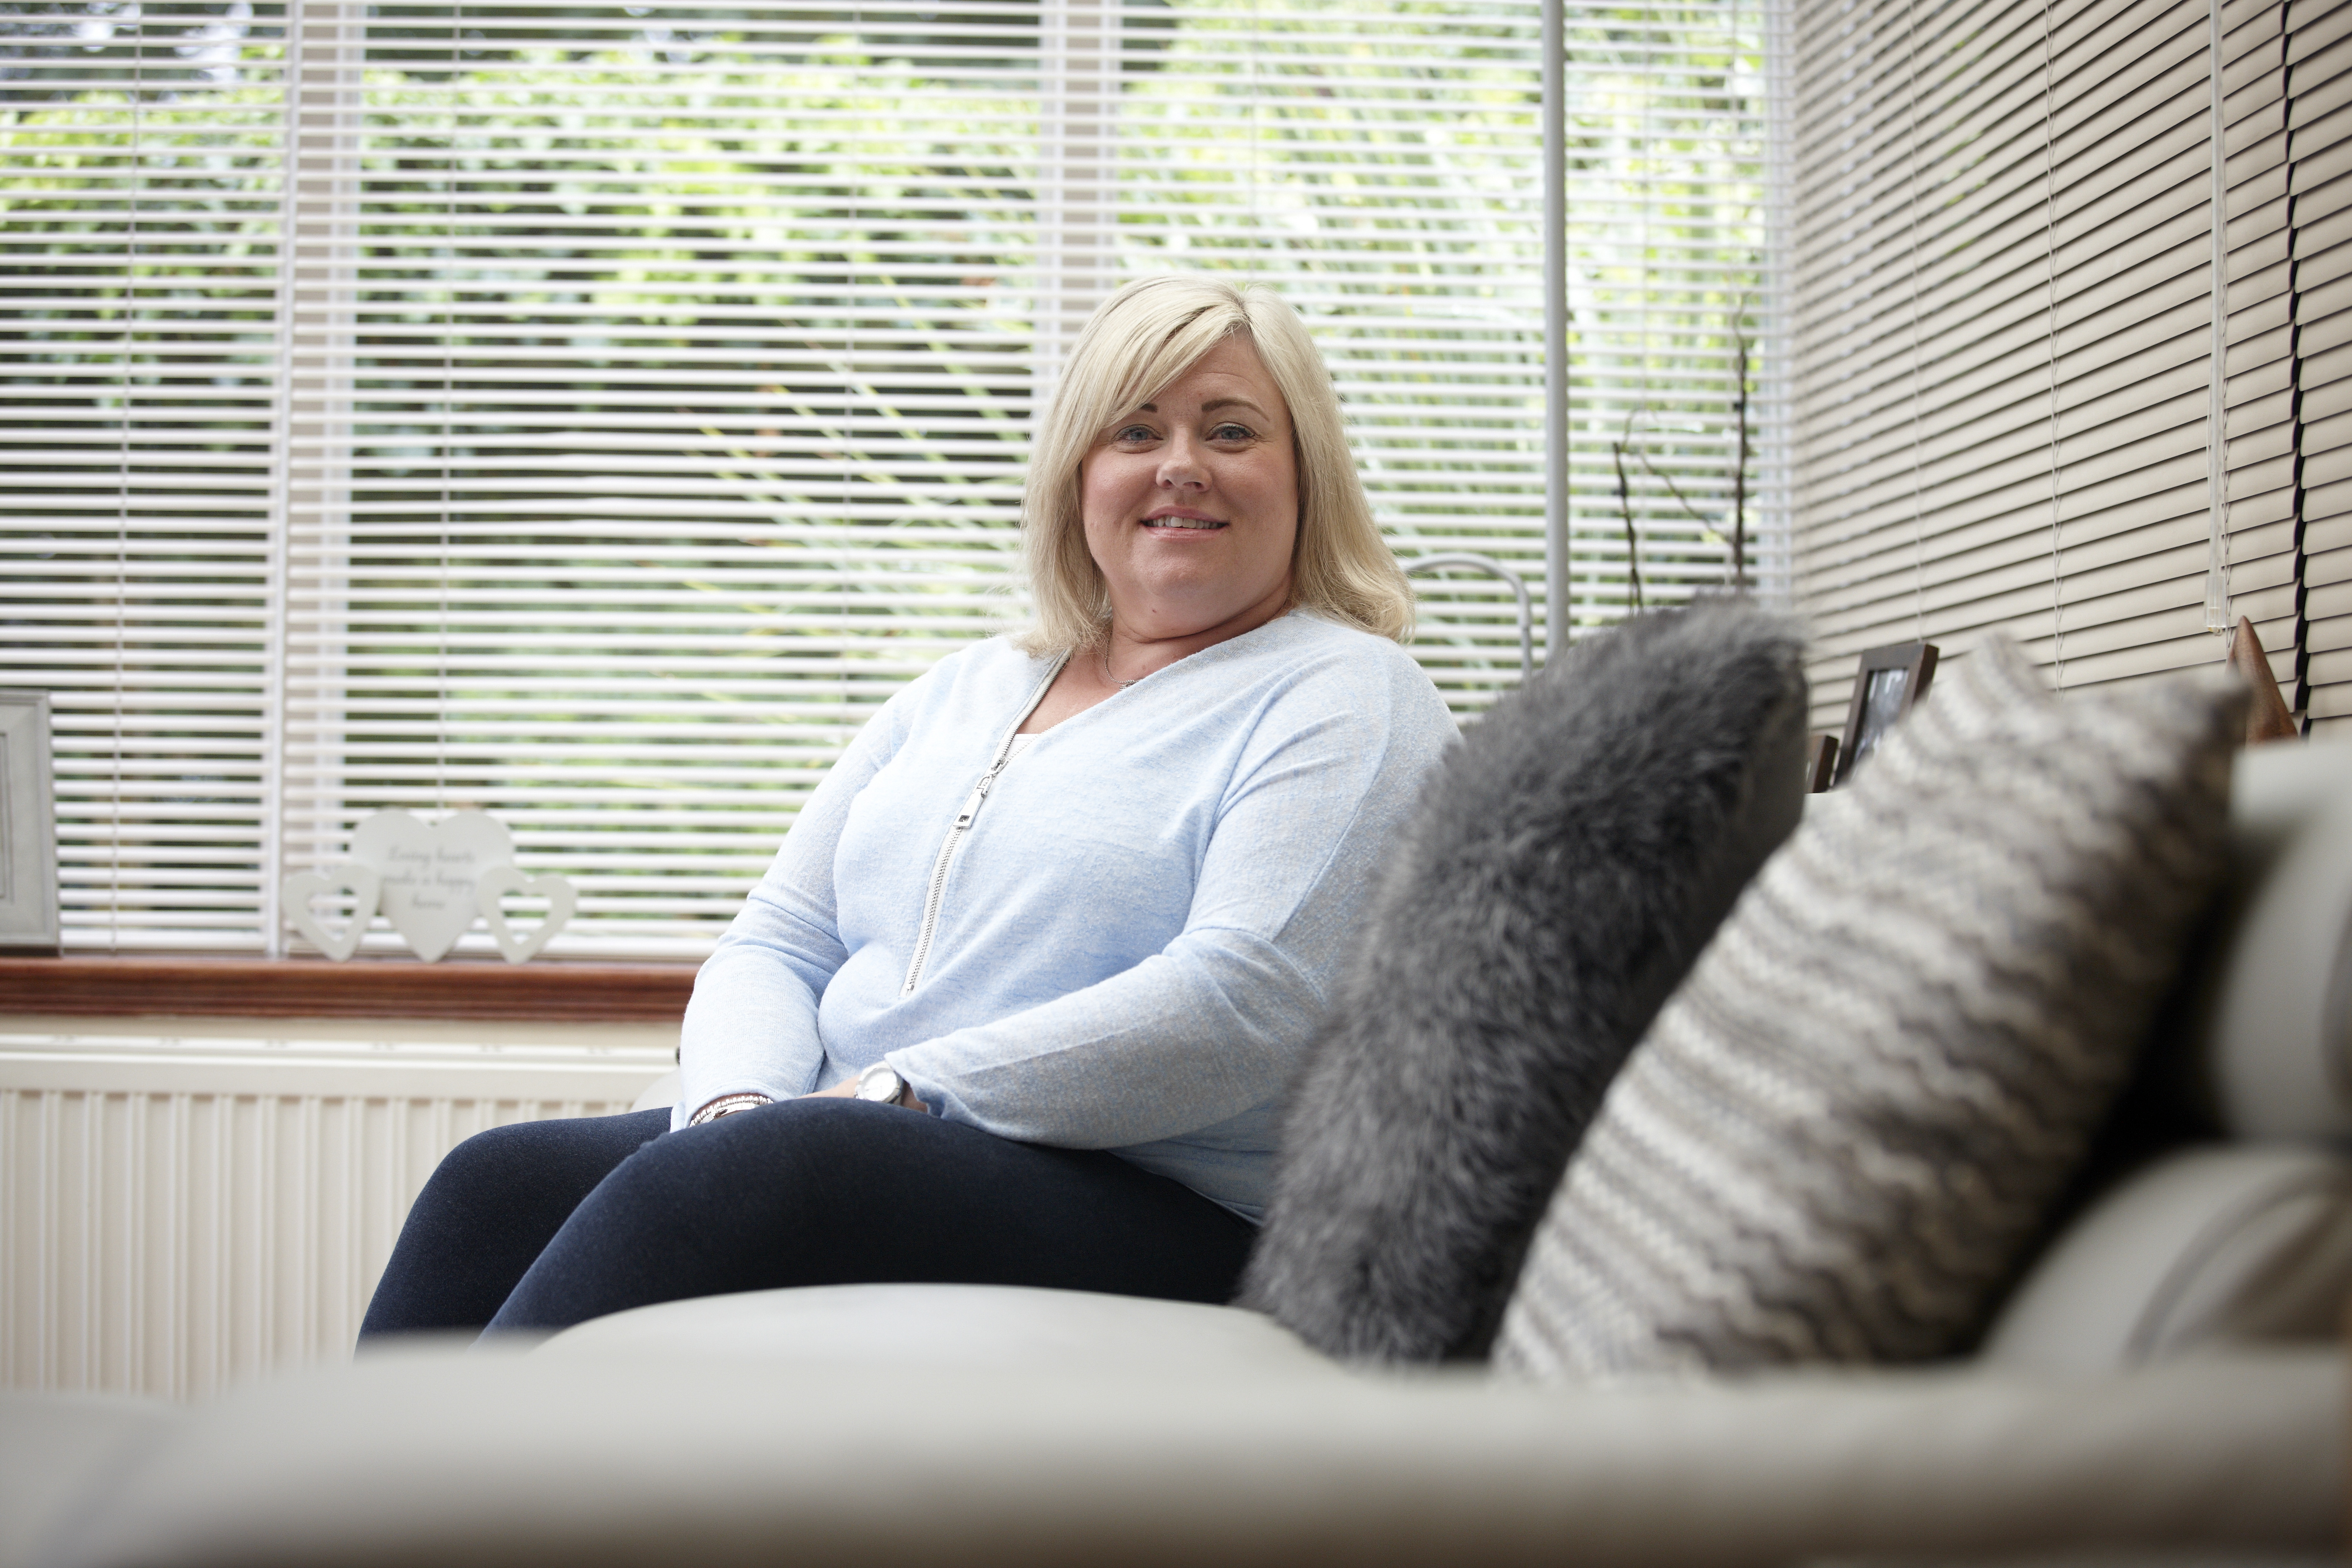 Sarah Thompson, Unite member who fought for compensation following unnecessary surgery, in her living room